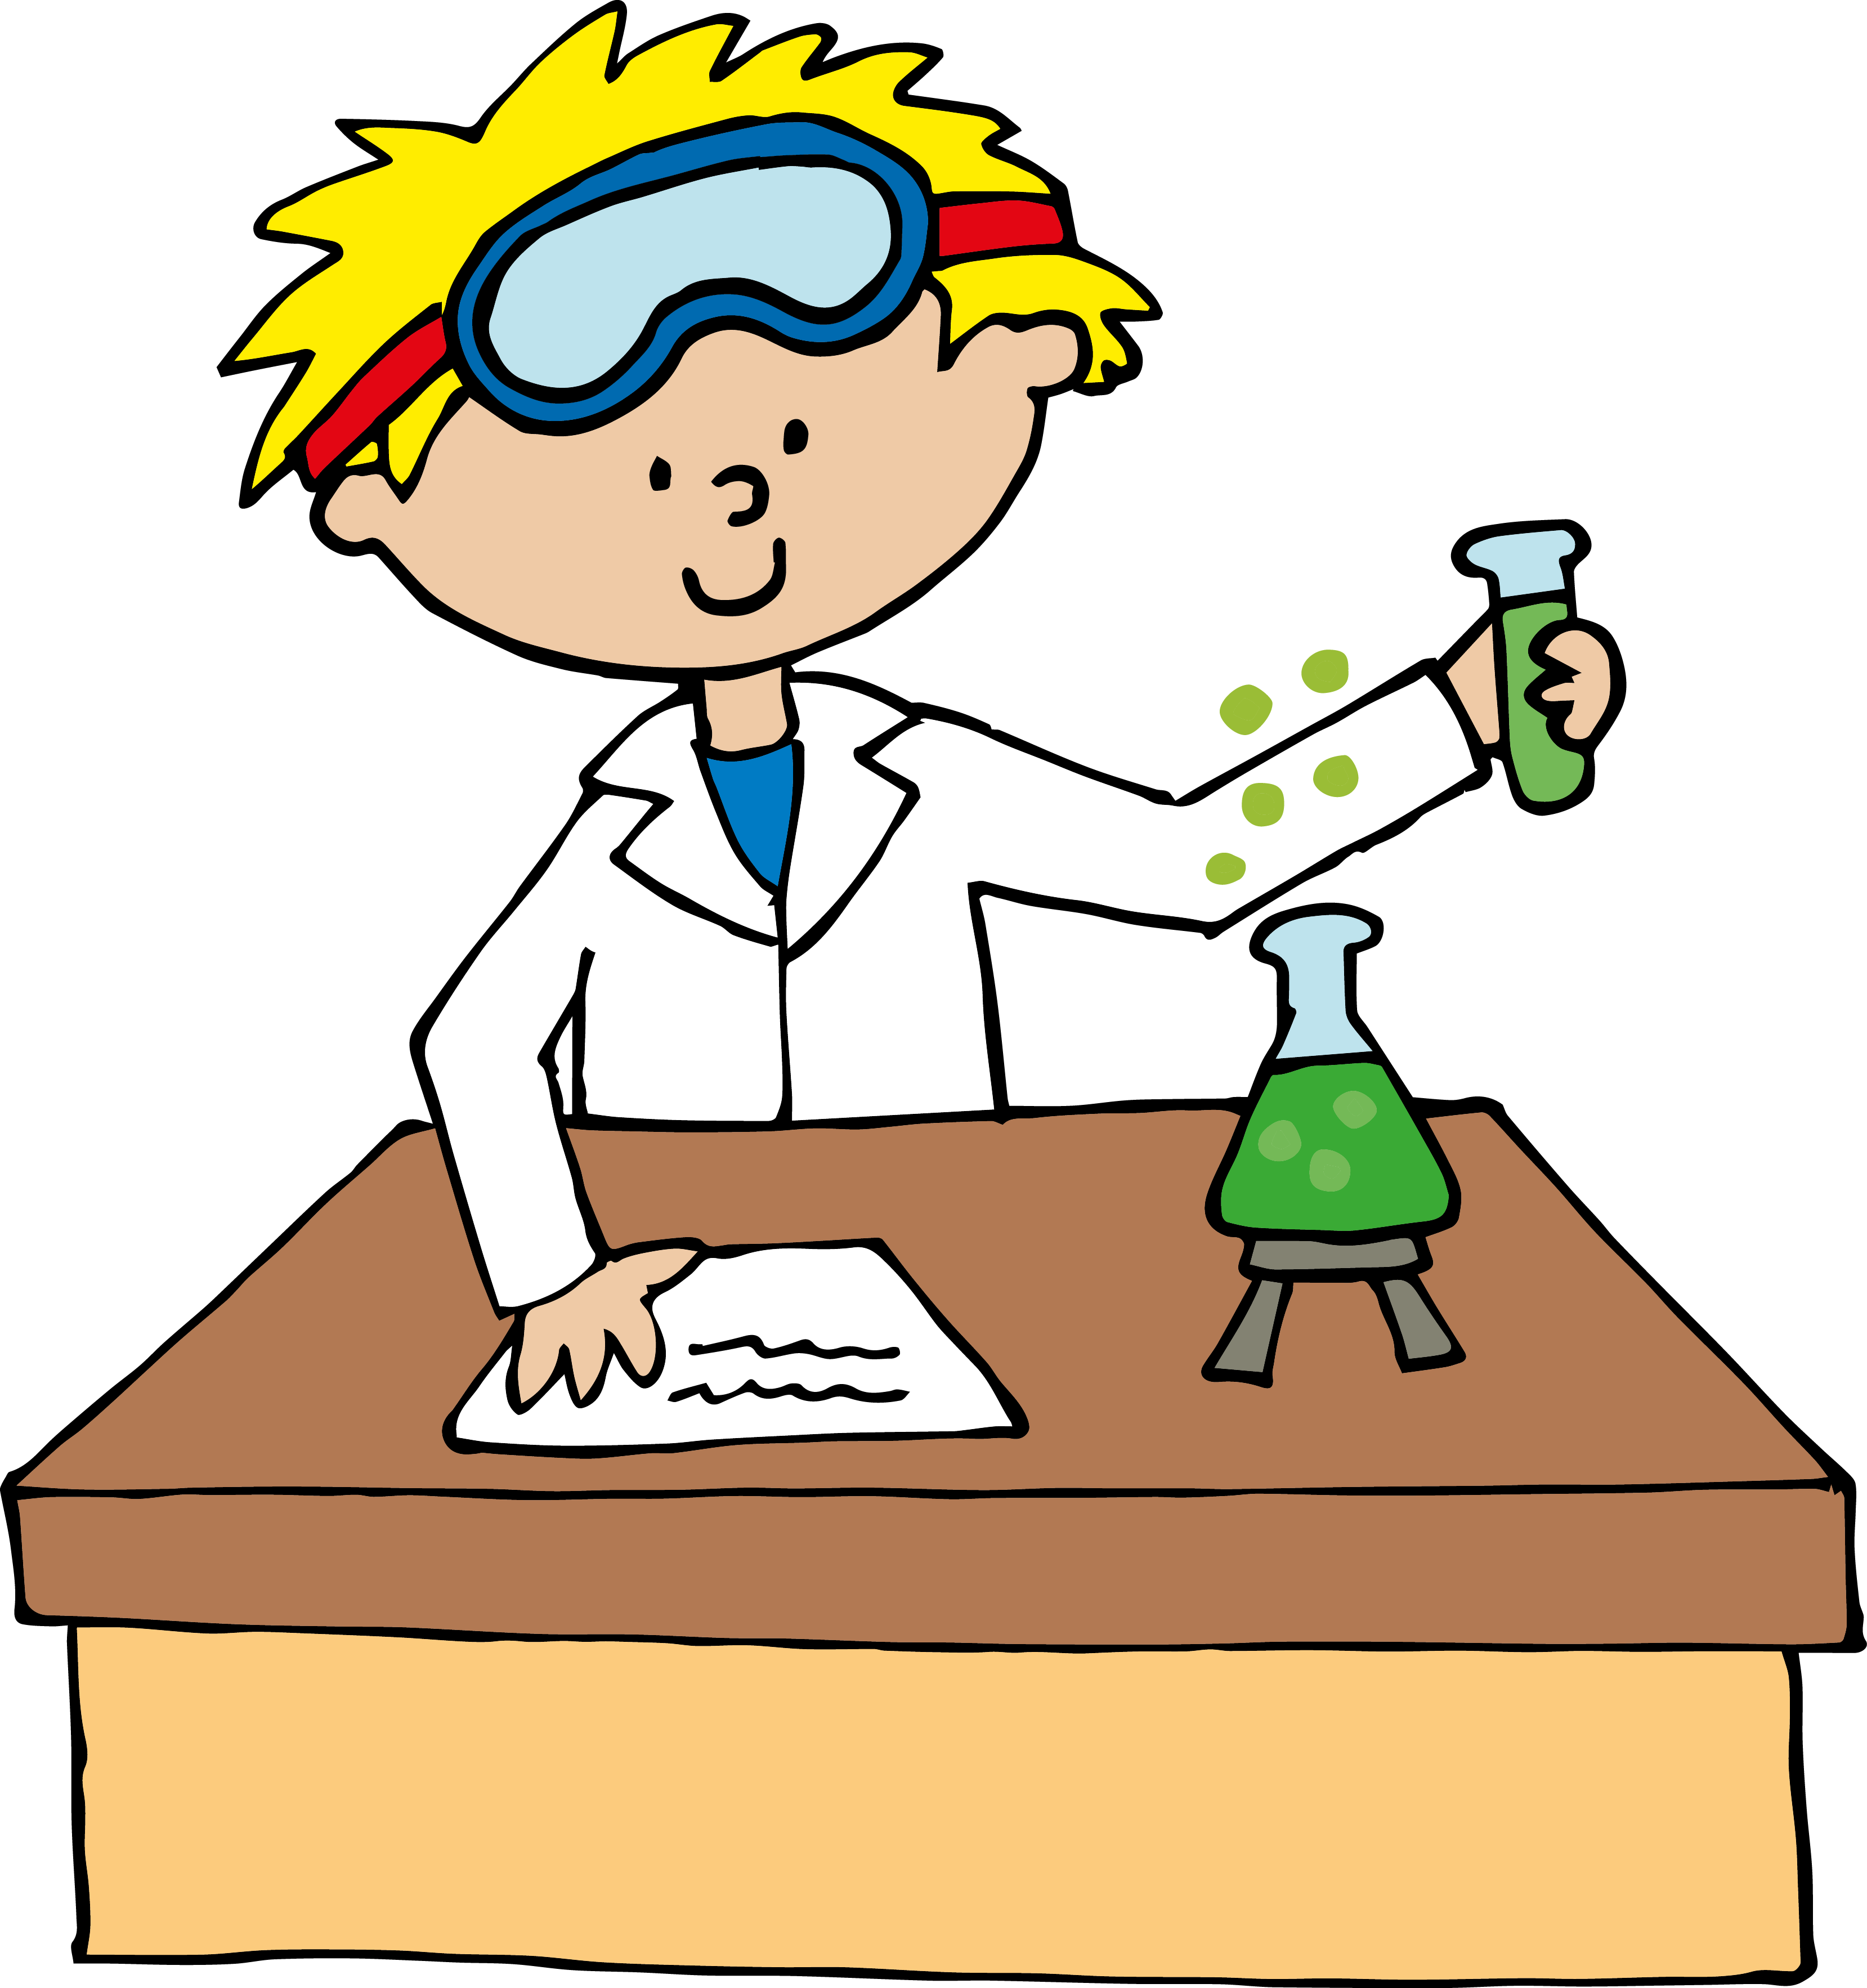 Giving an injection with needle in lab class clipart clipart freeuse library Scientist Pictures For Kids | Free download best Scientist Pictures ... clipart freeuse library